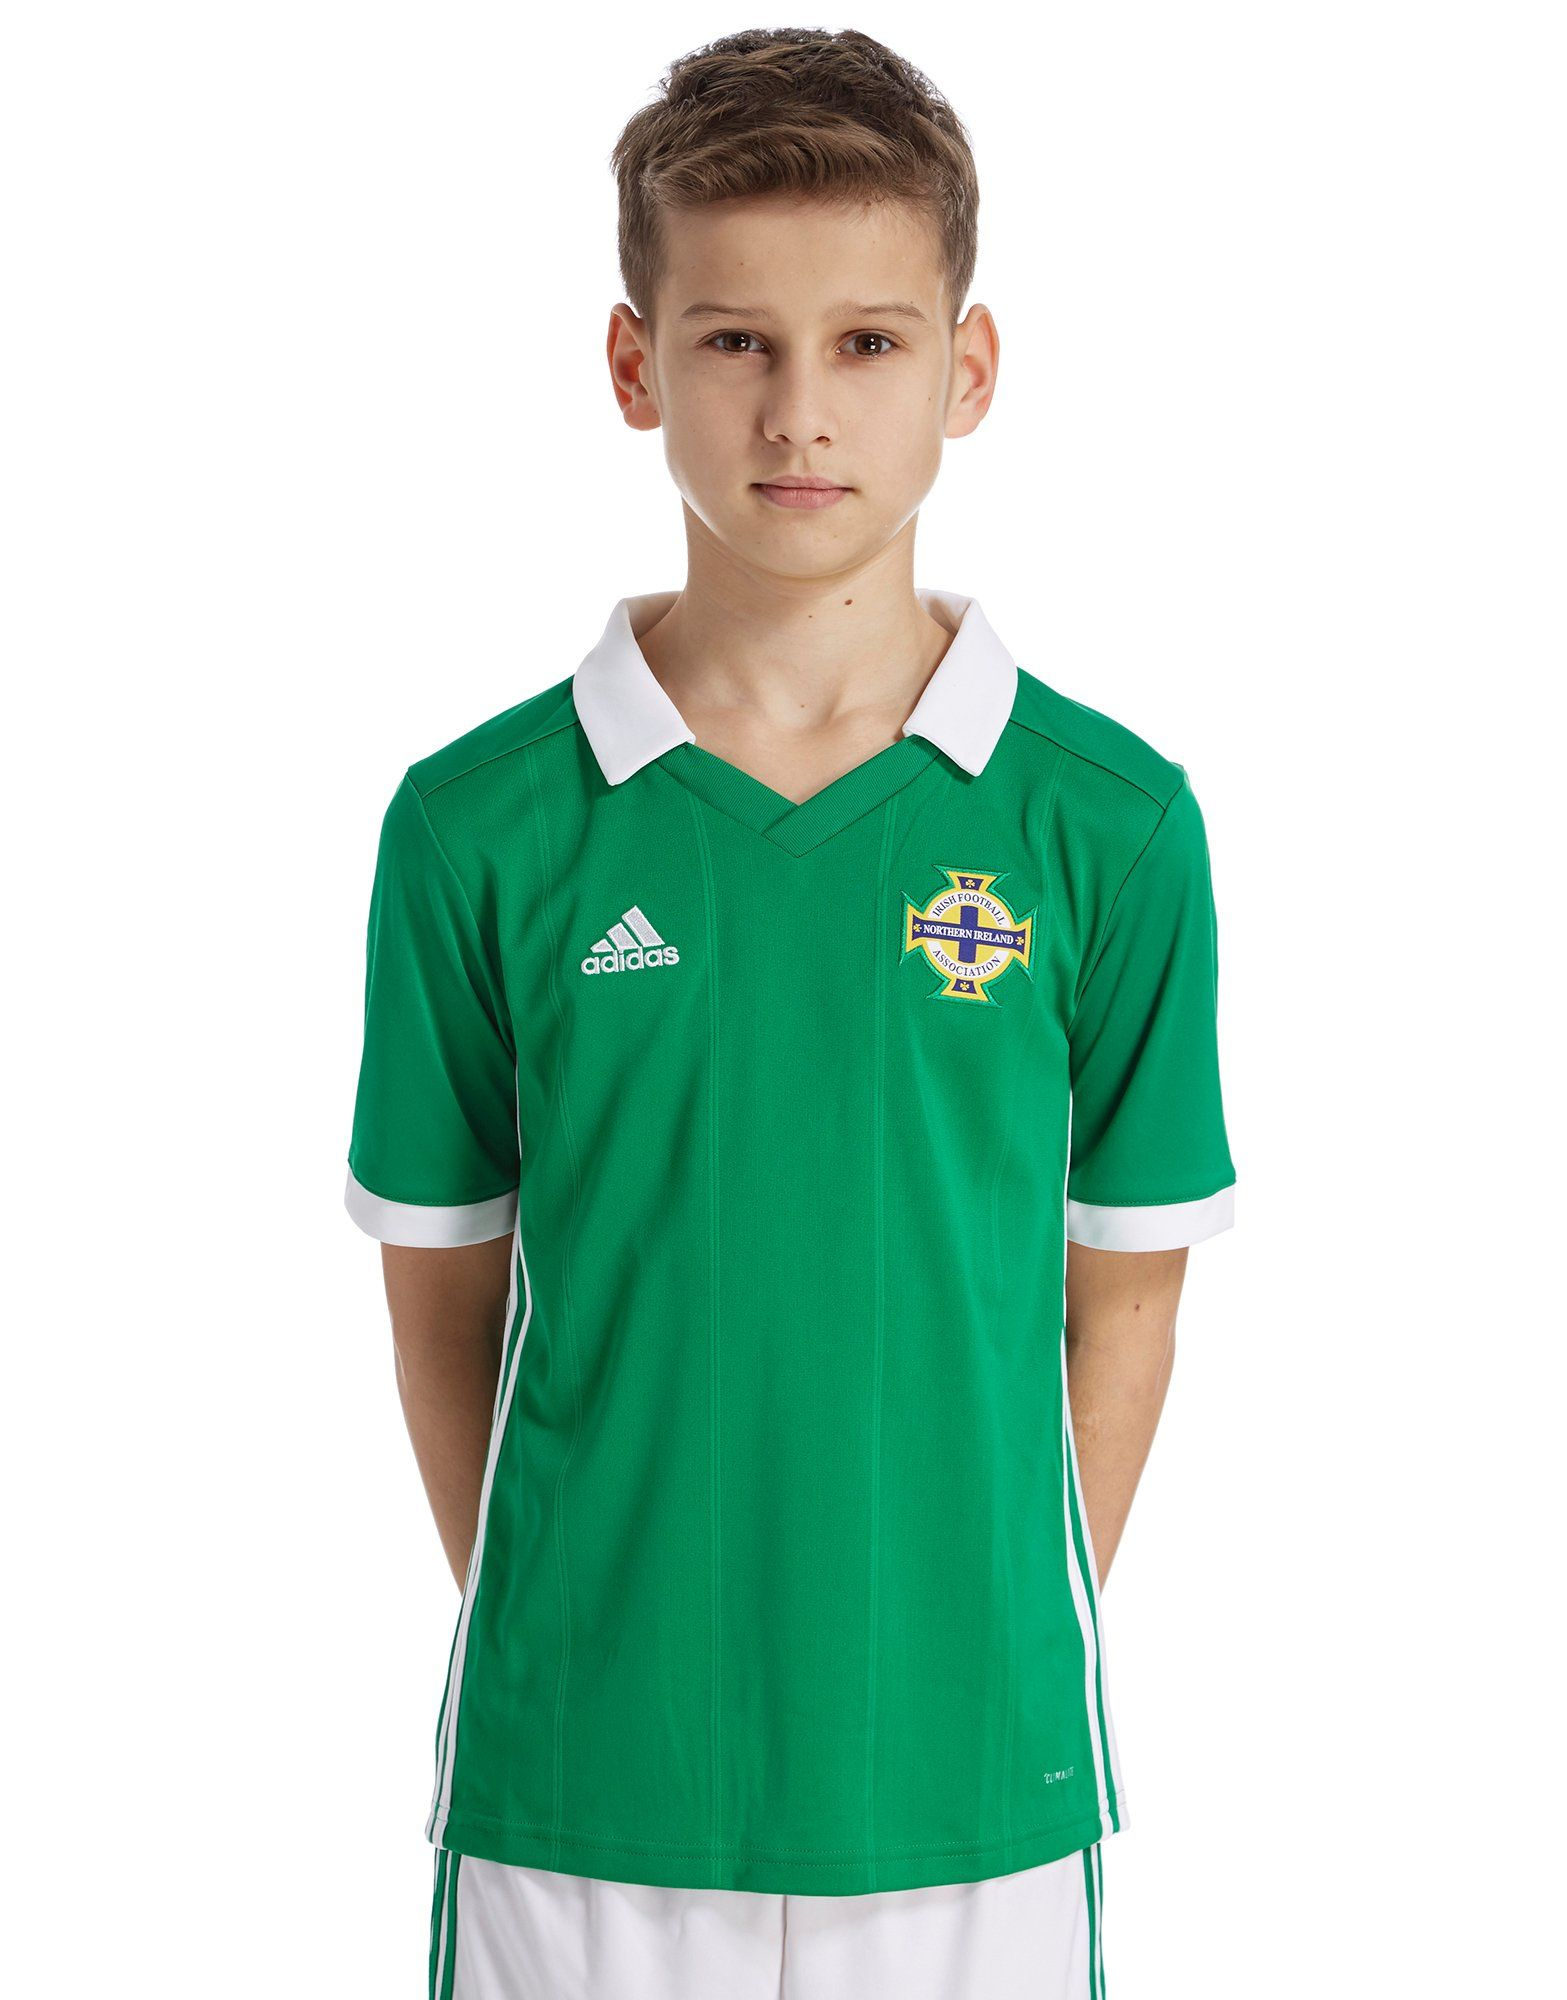 Northern Ireland Football Kits Shirts Shorts Jd Sports